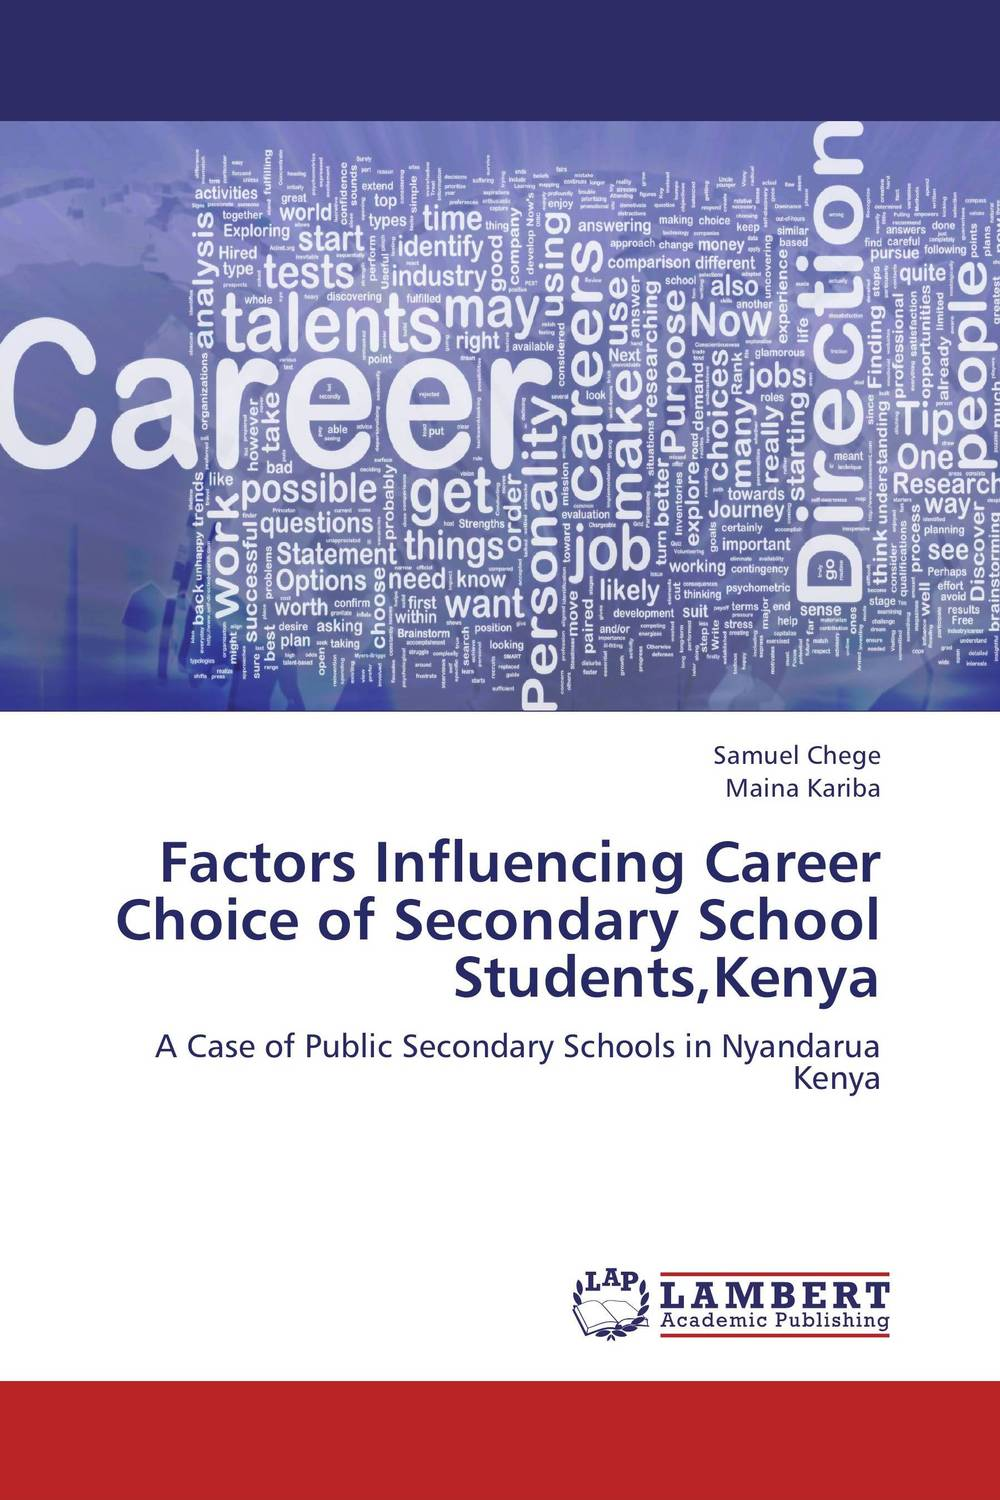 Factors Influencing Career Choice of Secondary School Students,Kenya role of school leadership in promoting moral integrity among students